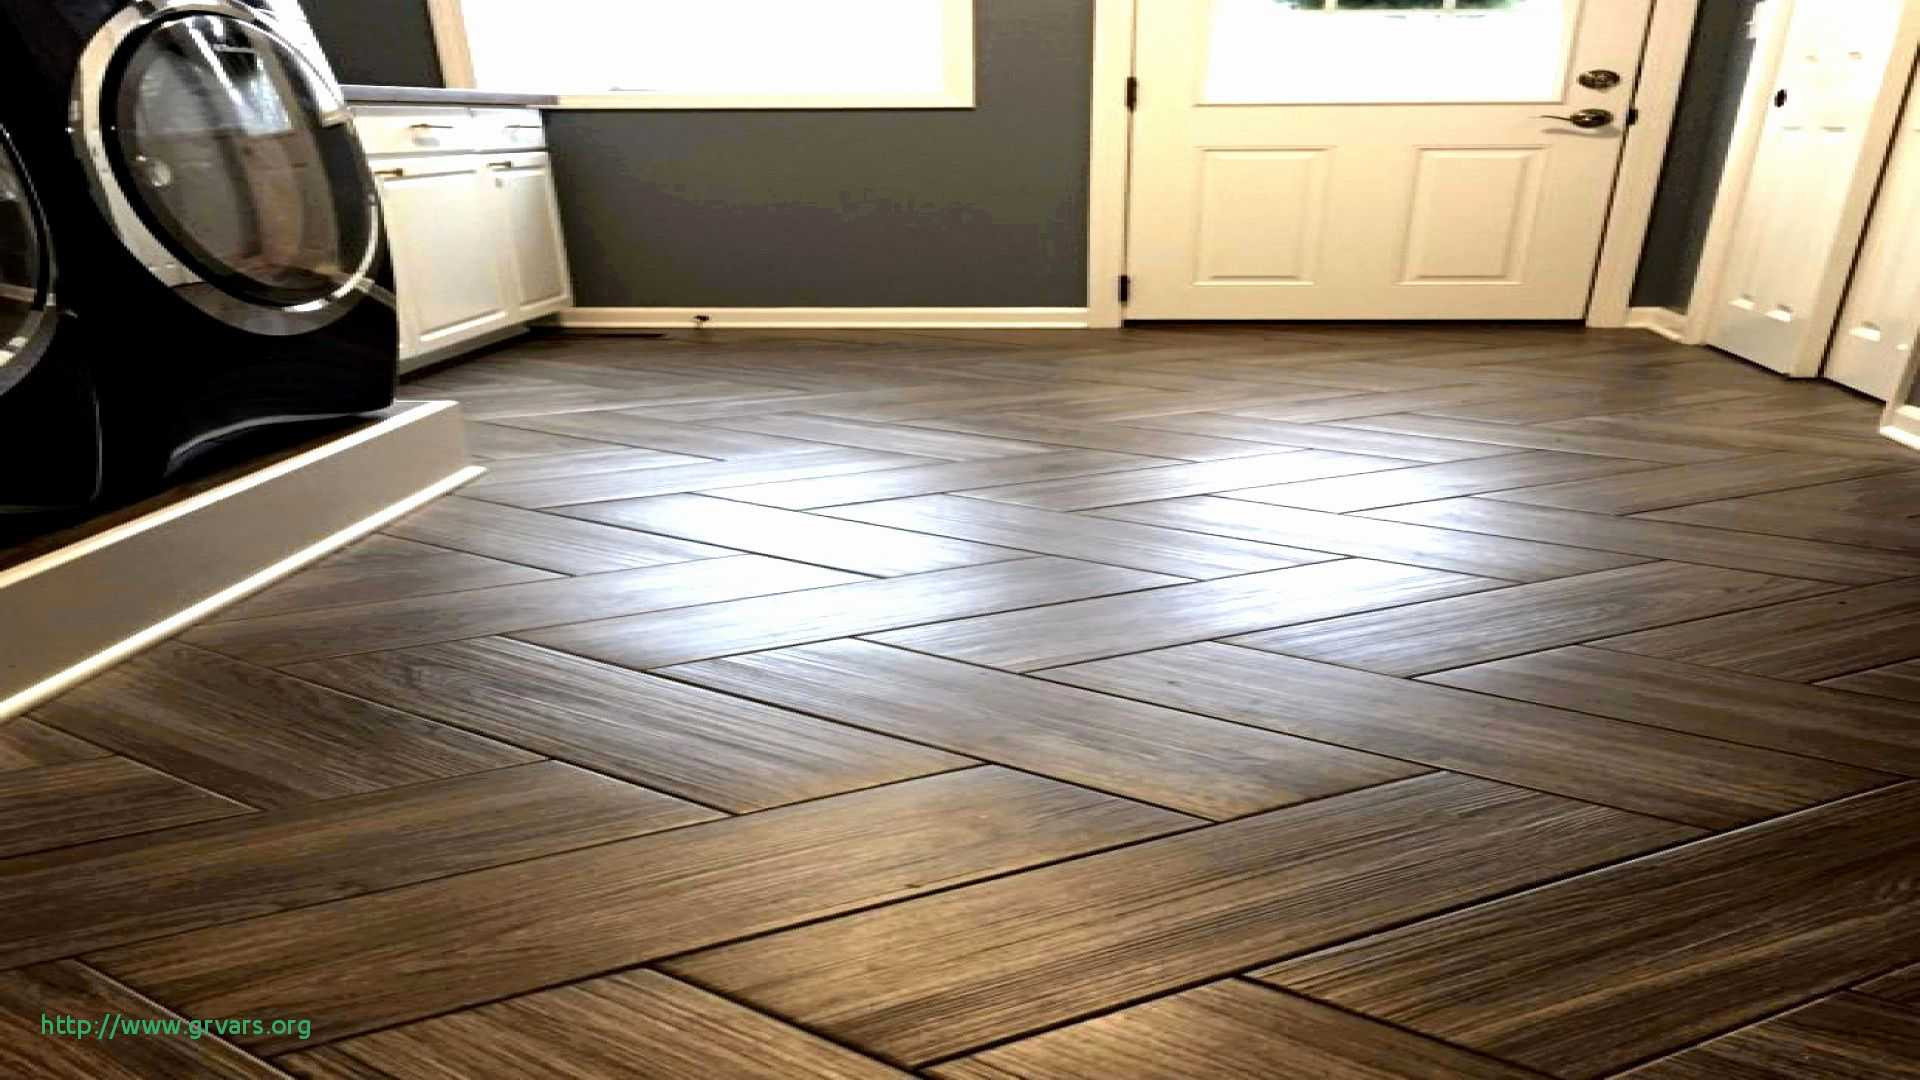 how much does it cost to replace hardwood floors of 23 impressionnant how much does it cost to install vinyl flooring with kitchen floor tiles home depot elegant s media cache ak0 pinimg 736x 43 0d 97 best 40 how to deep clean vinyl floors inspiration from how much does it cost